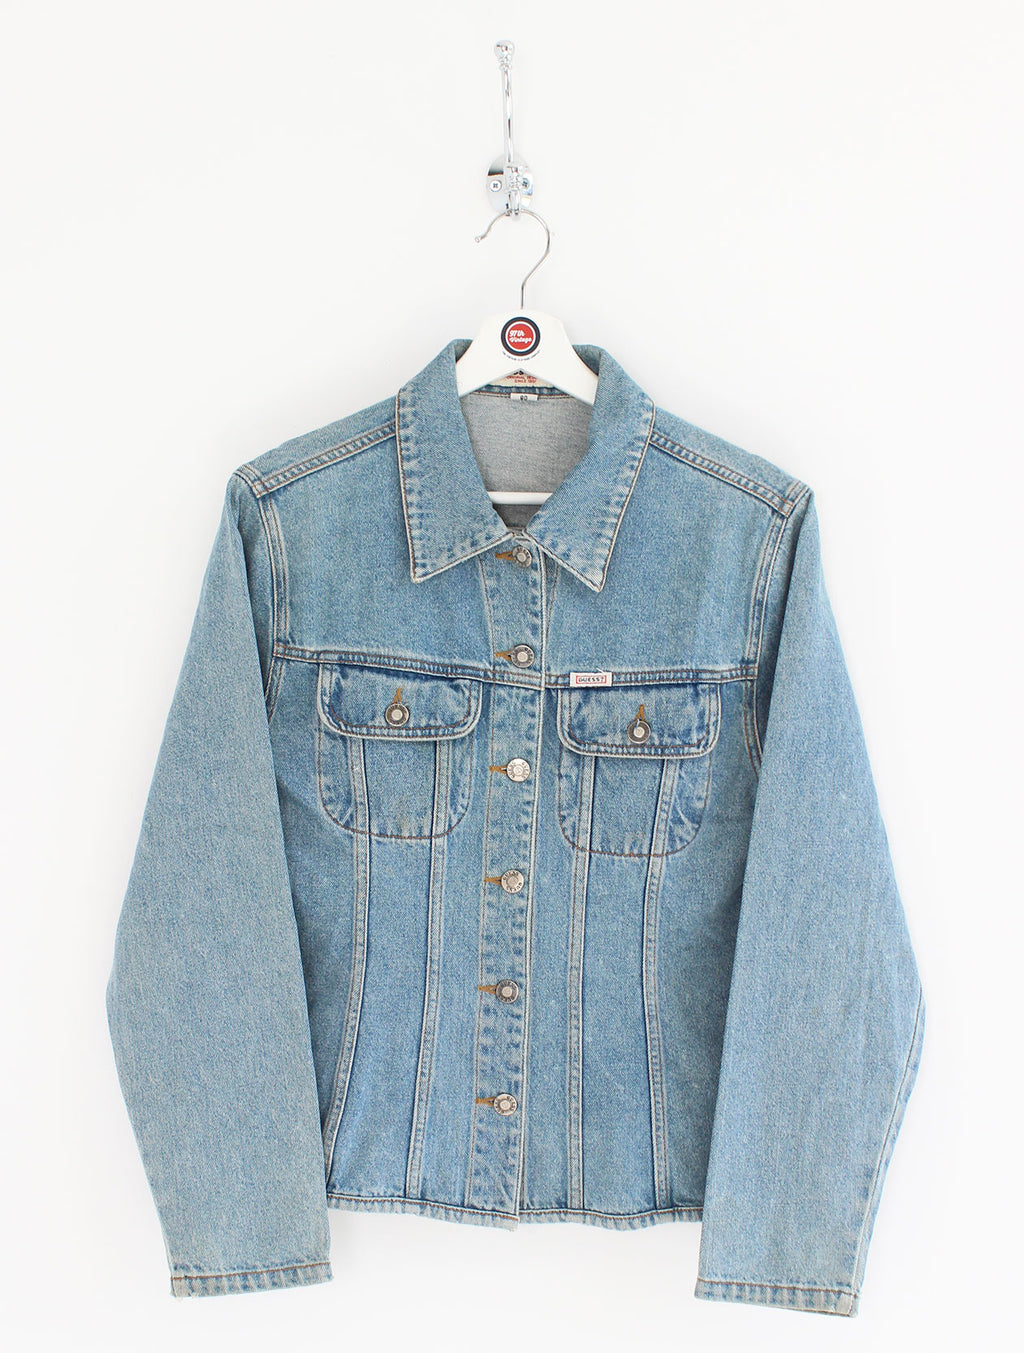 Women's Guess Denim Jacket (S)